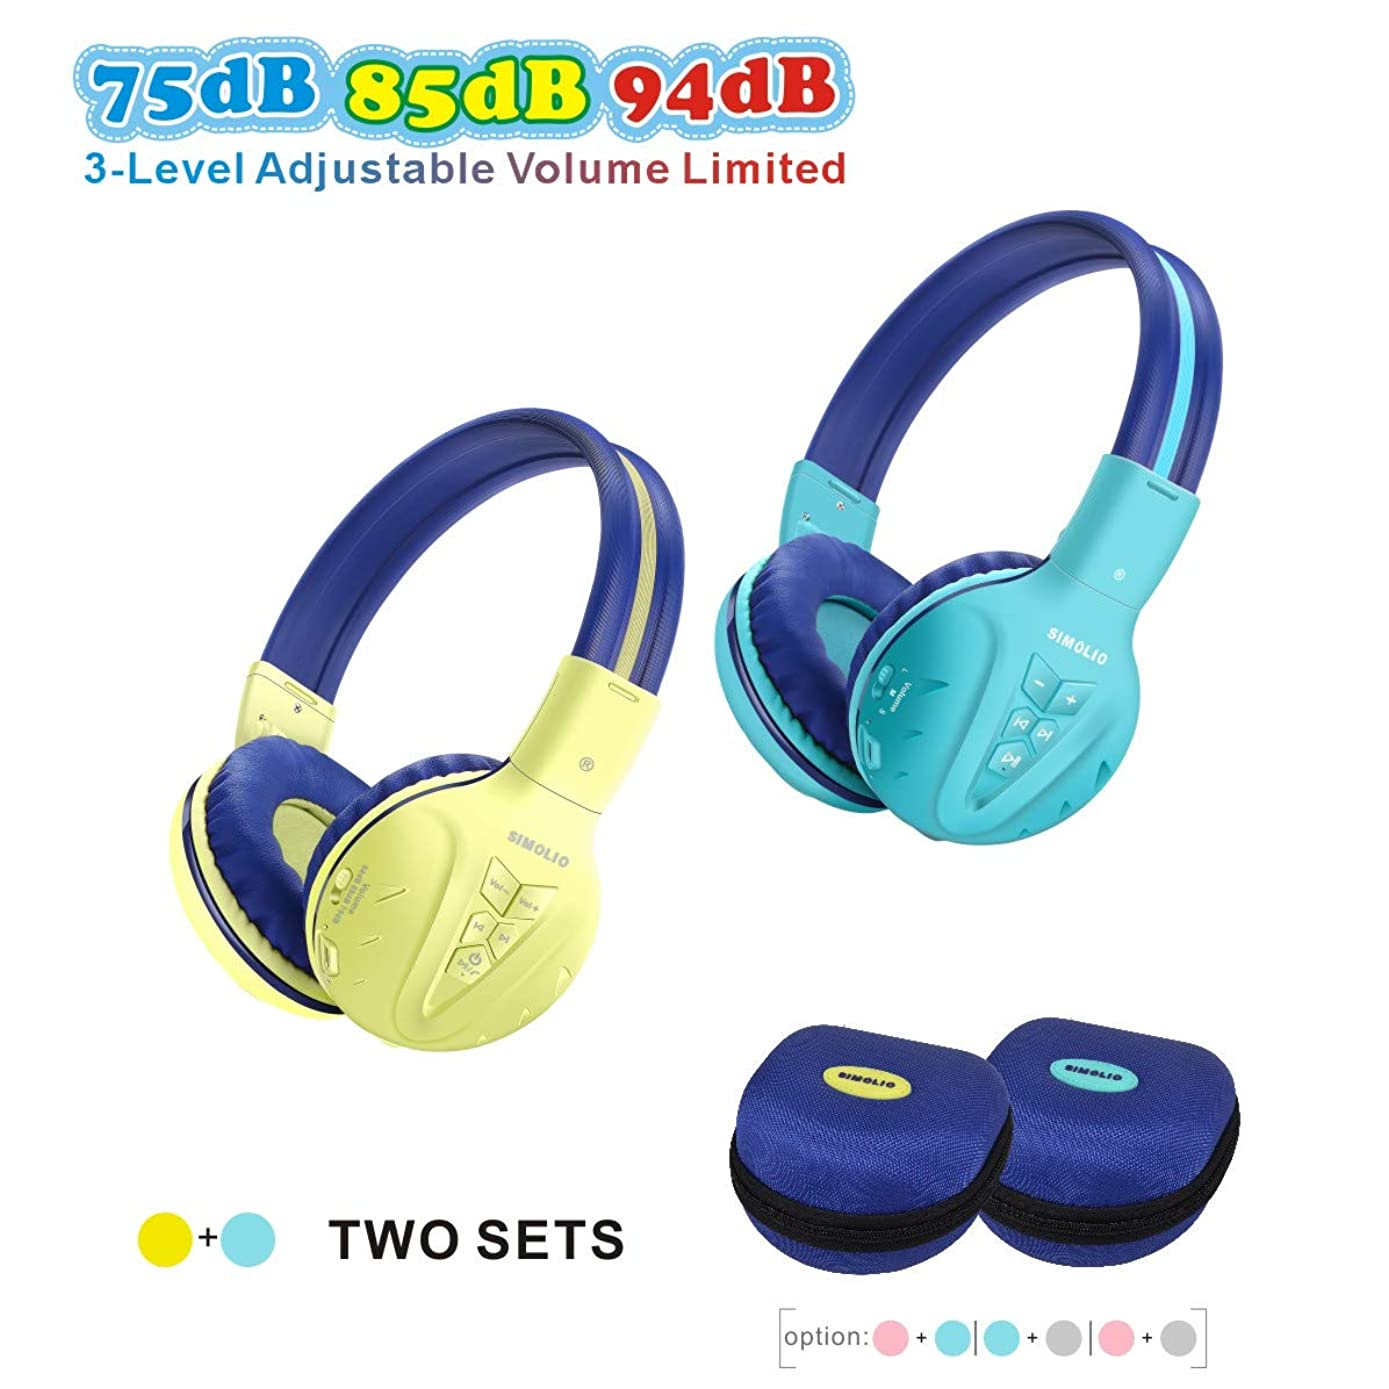 2 Pack of SIMOLIO Wireless Kids Headphone with Hard Case, Bluetooth Kids Friendly Headphone Volume Limited, Wireless Headphones for Girls,Boys,Over-Ear Kids Headphones for School,Travel(Mint,Yellow)